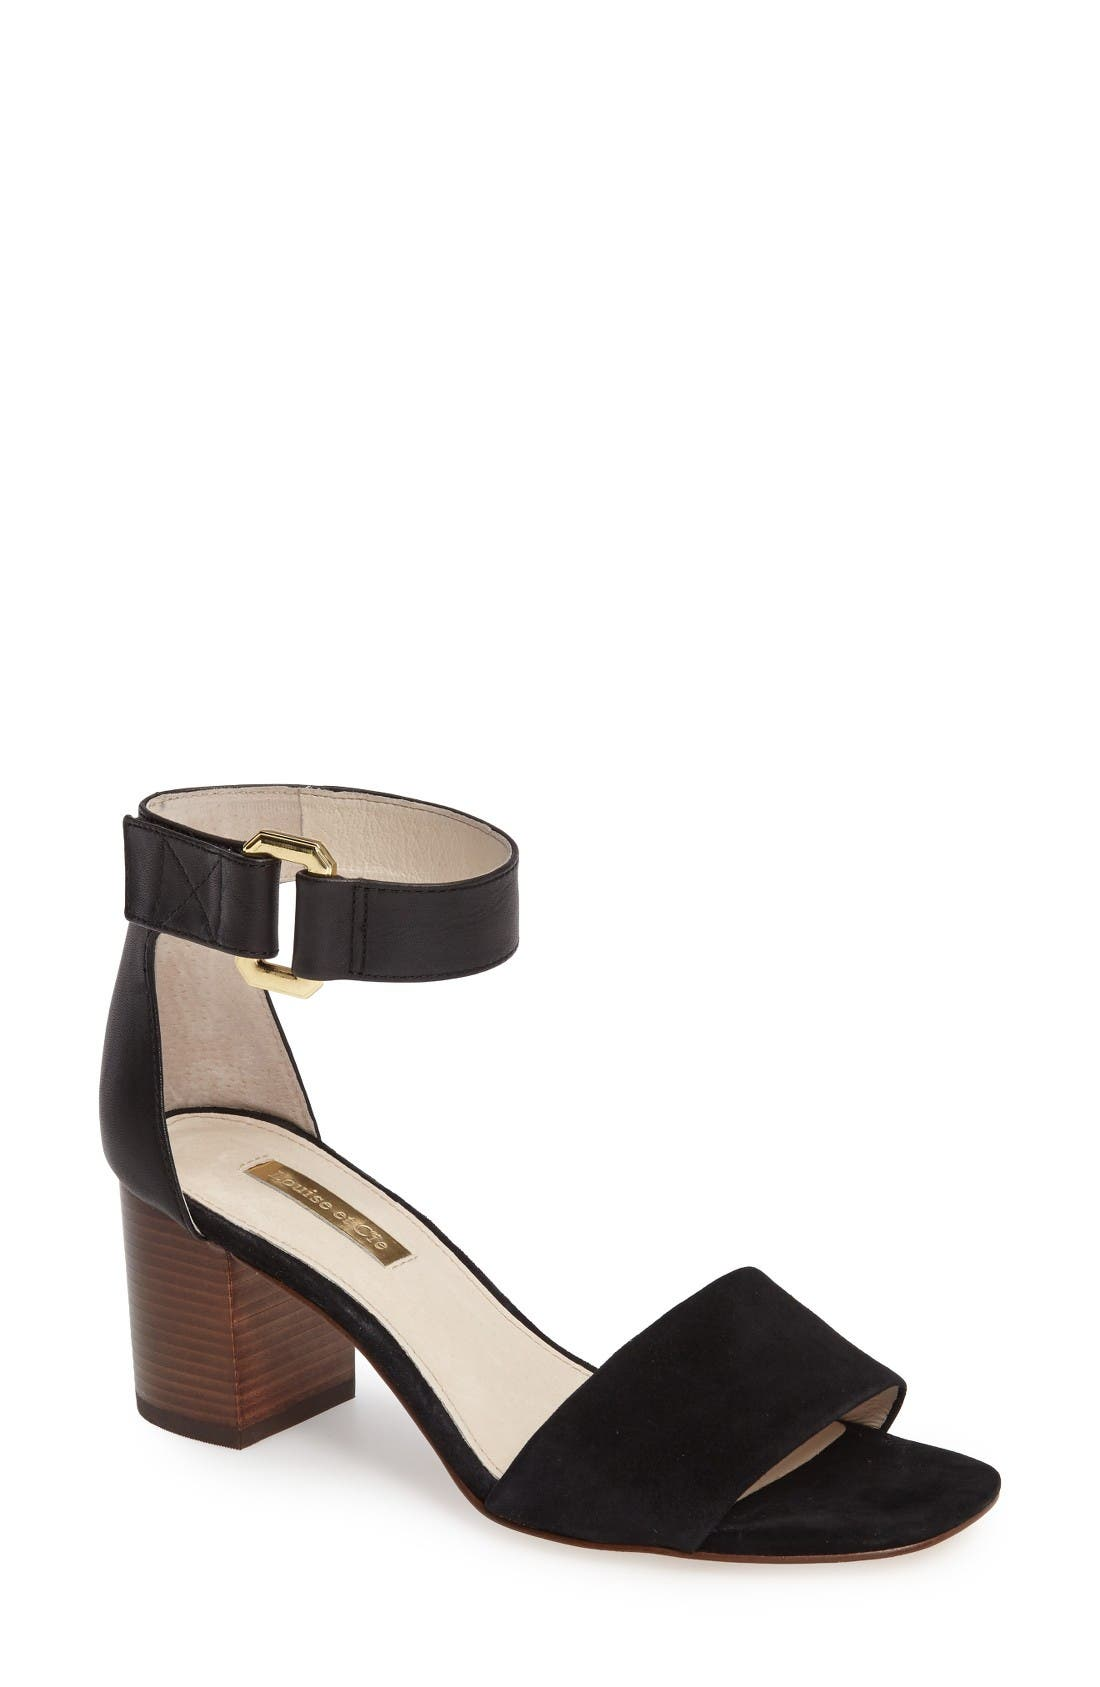 Louise et Cie Kambria Block Heel Sandal (Women)